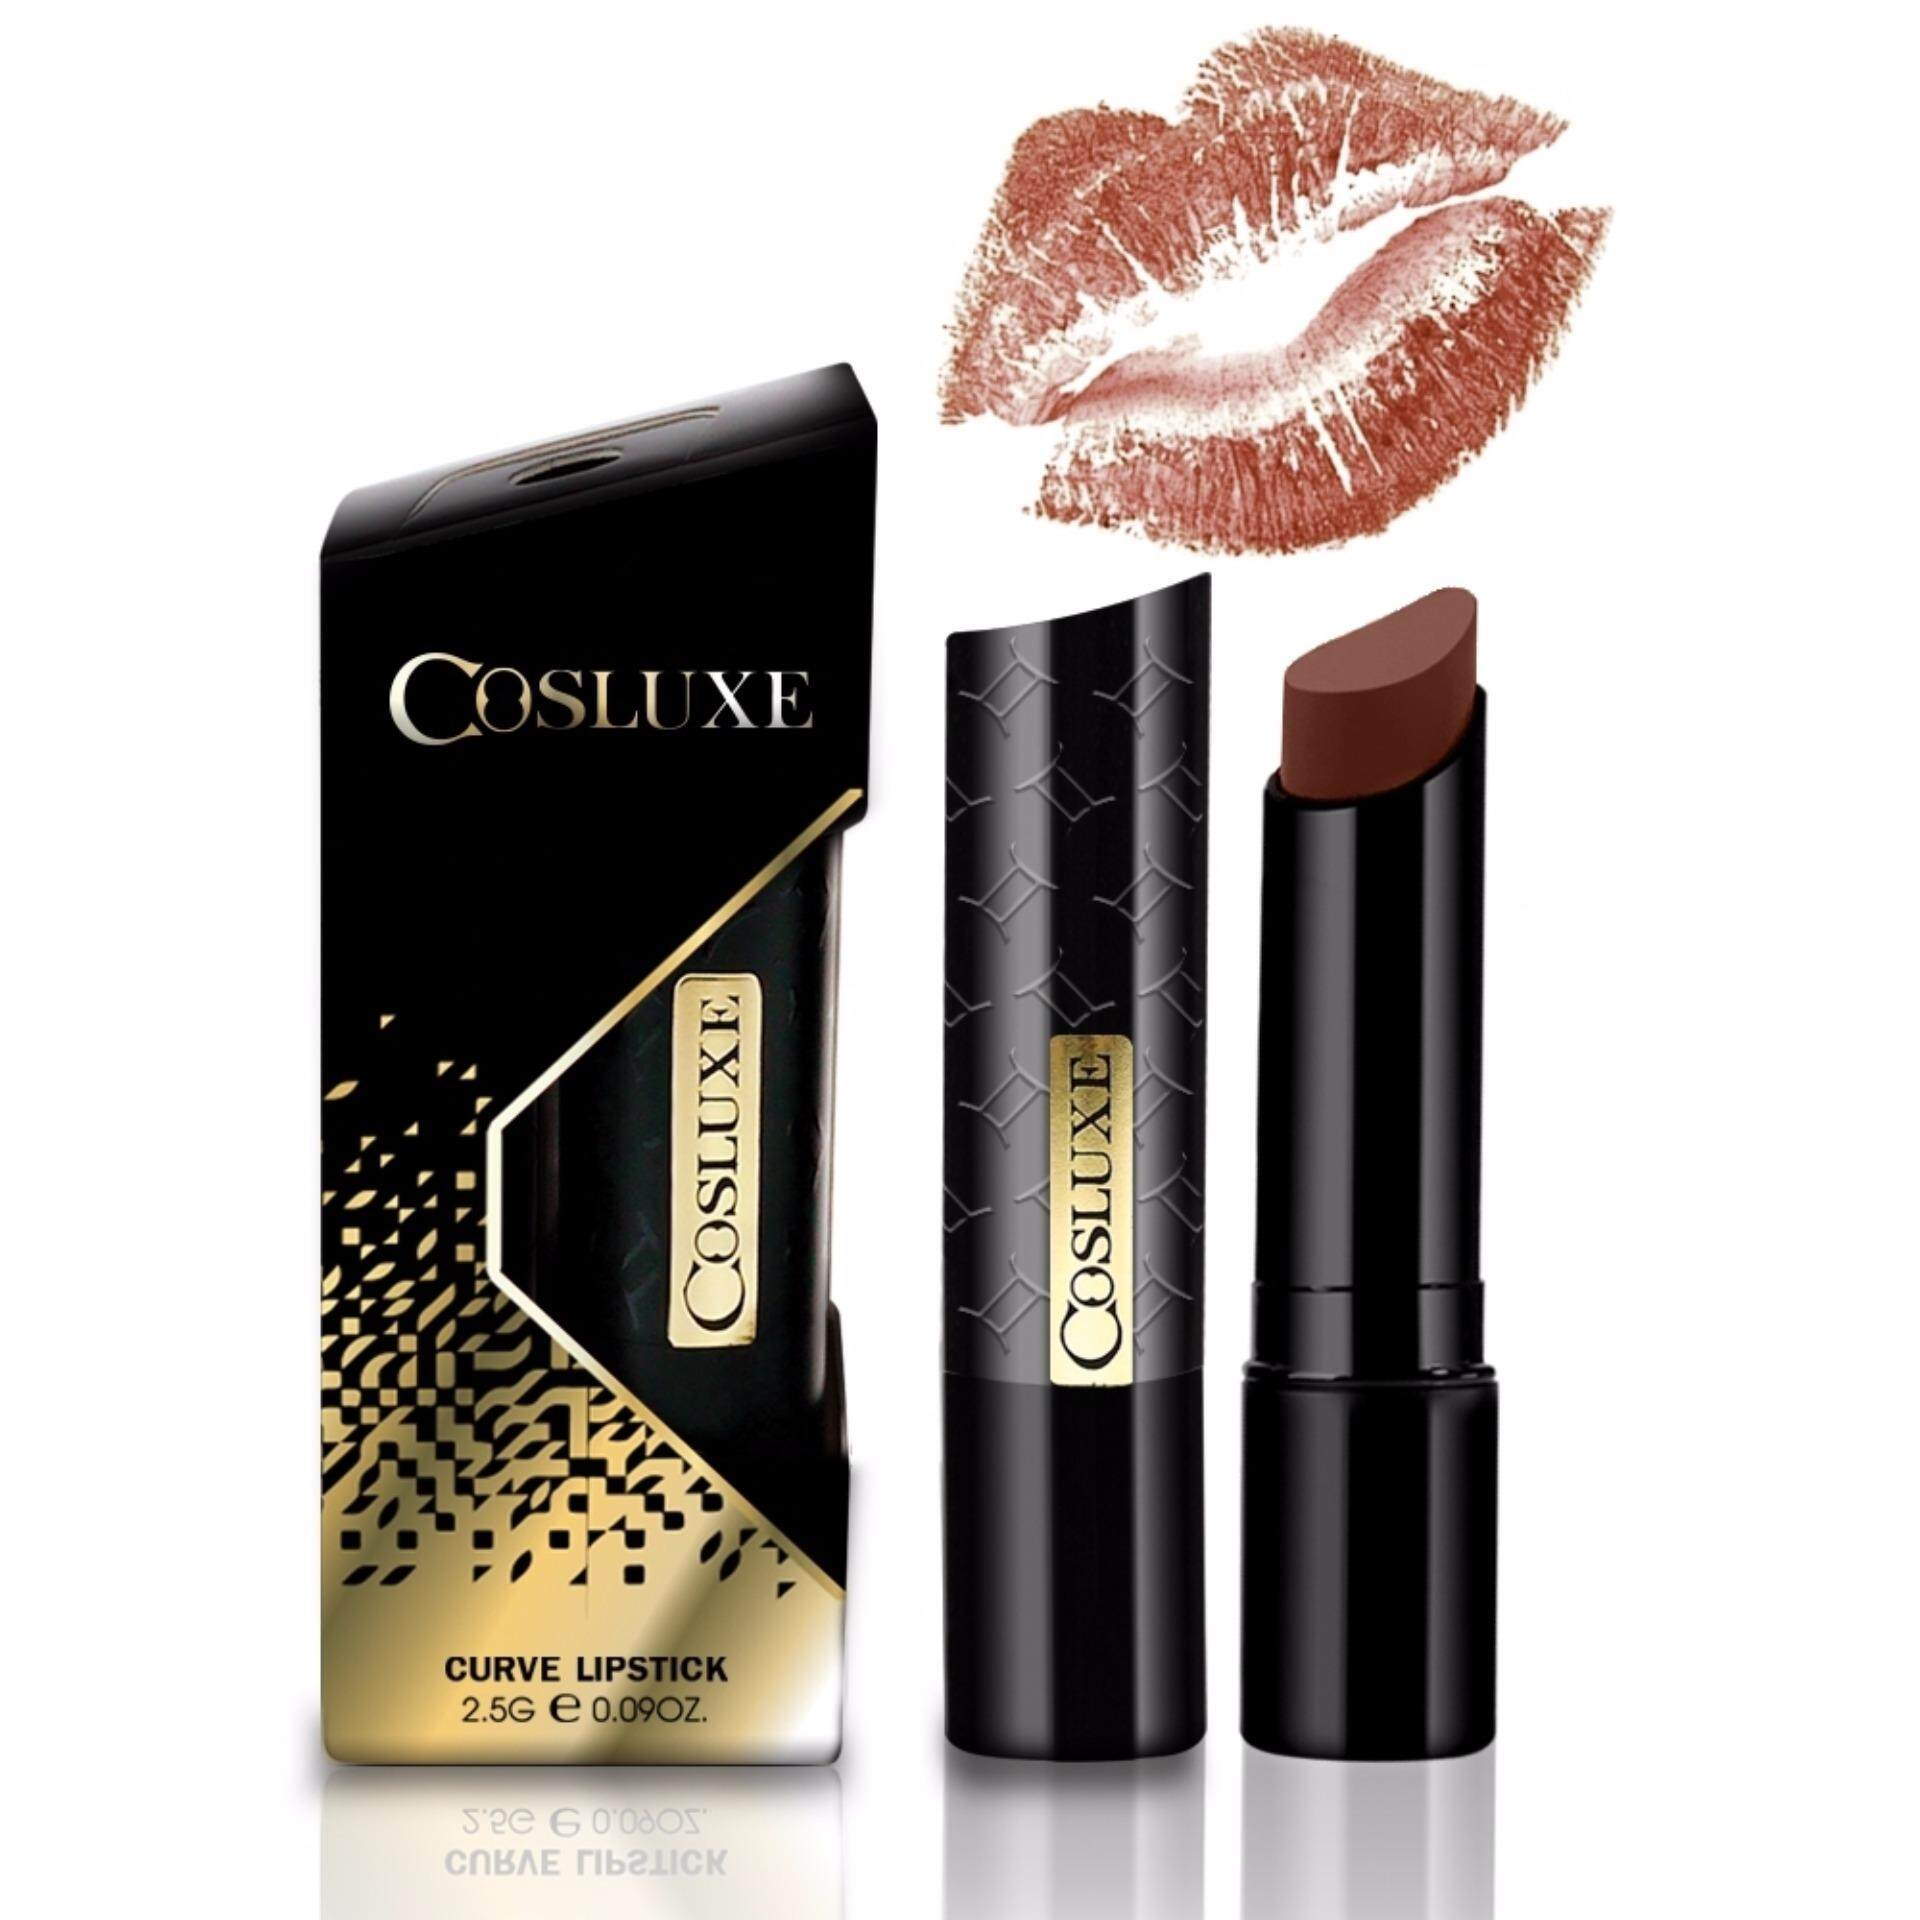 Cosluxe Ultra Matte Curve Lipstick #Brown Sugar น้ำตาล